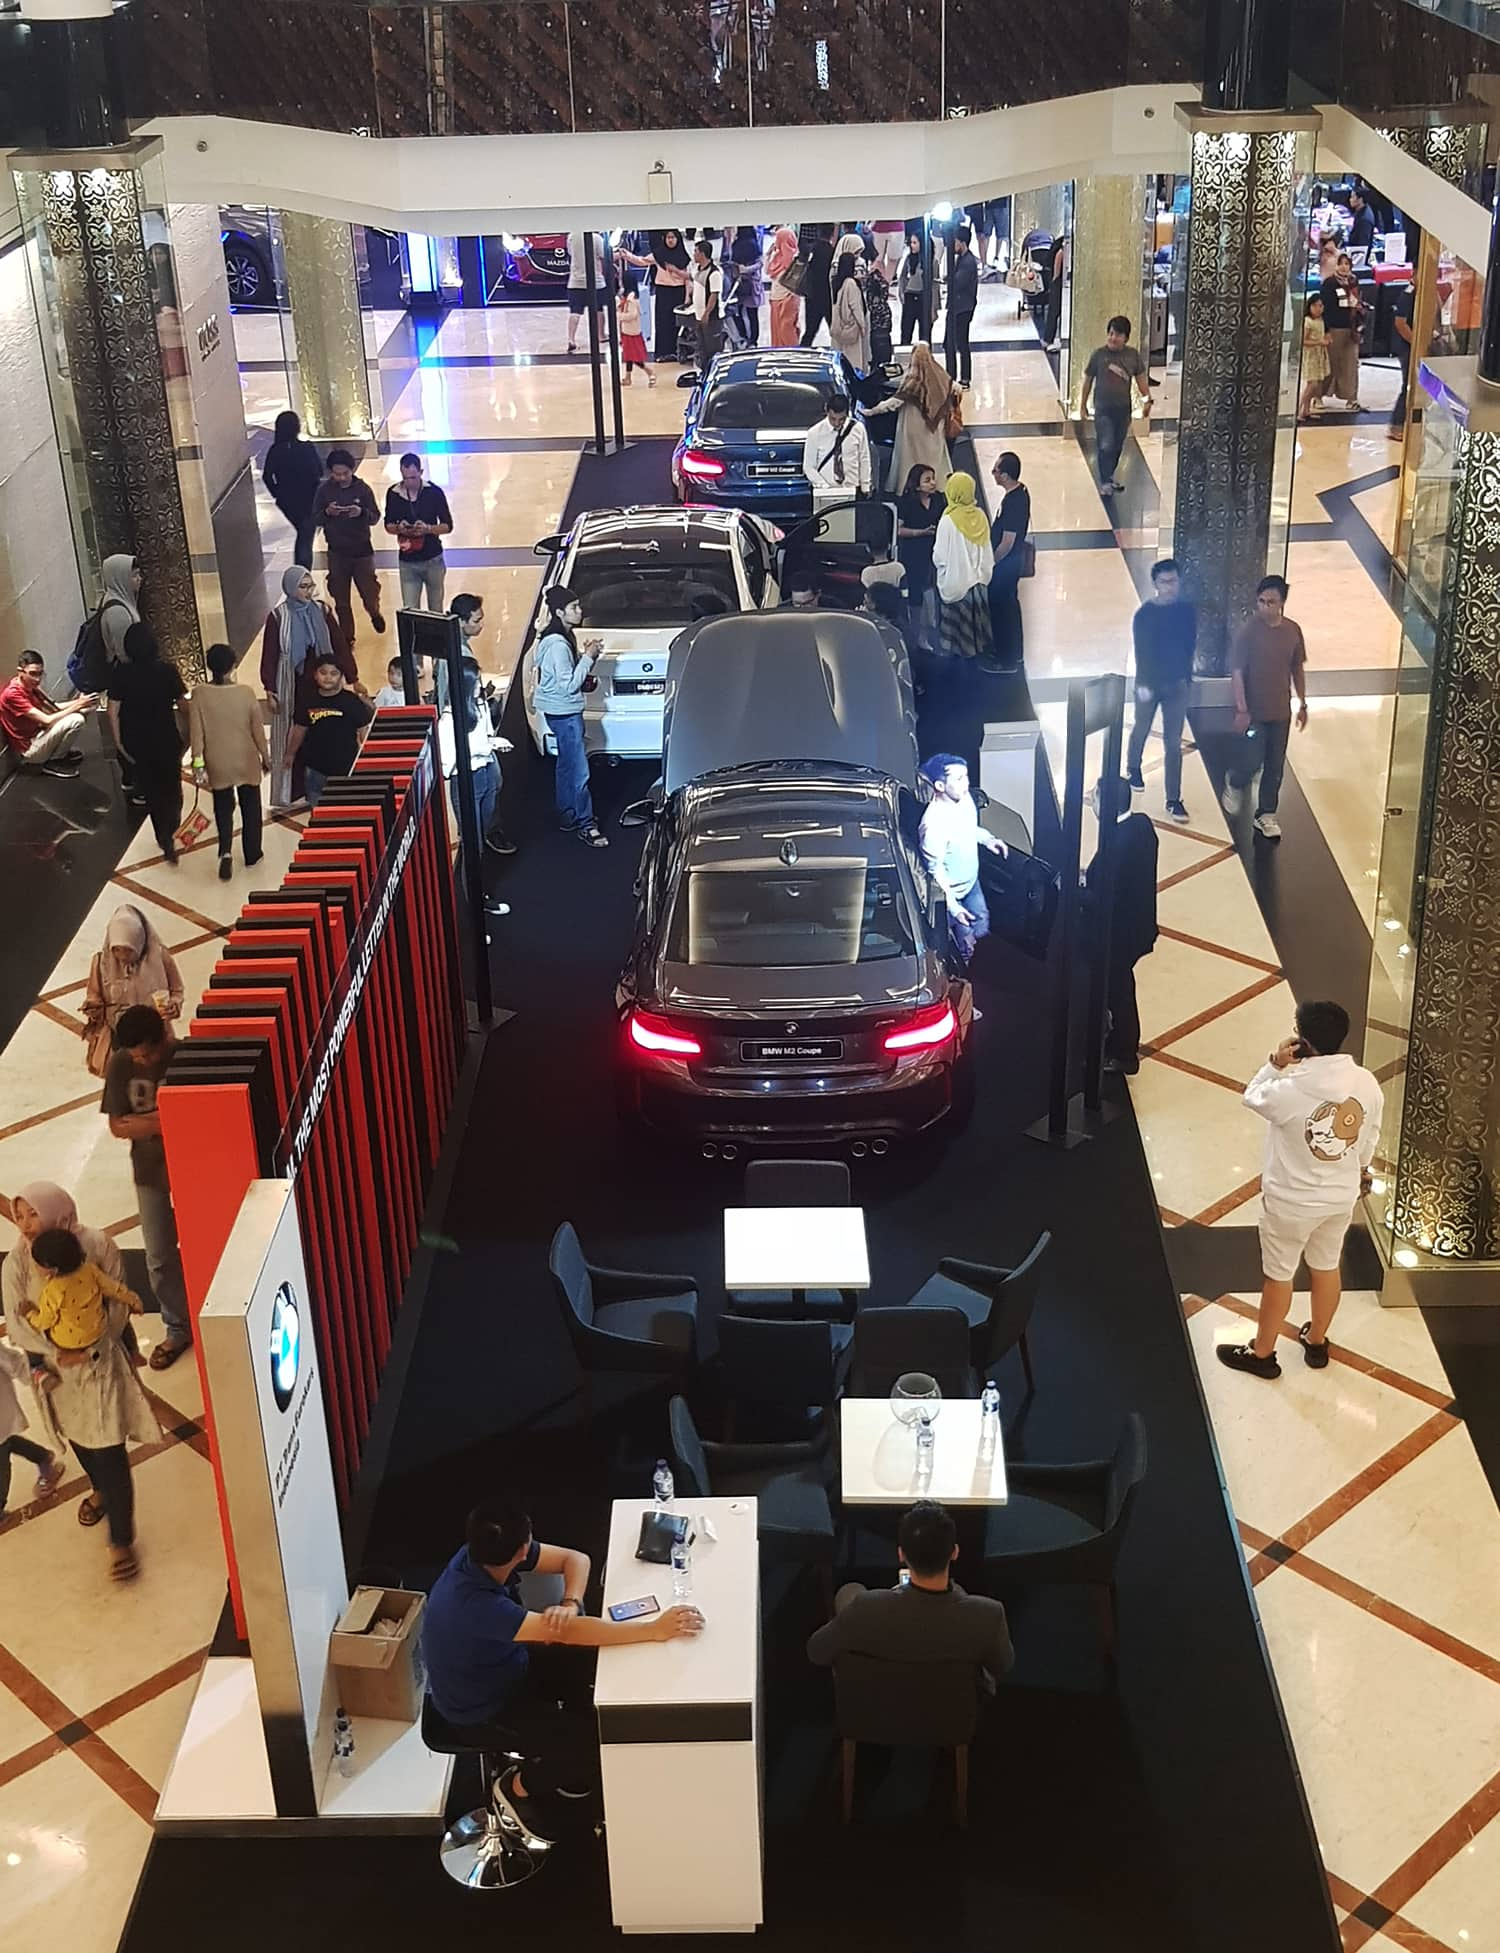 BMW Indonesia showcased its latest range of BMW and BMW M models at an exhibition held at Trans Studio Mall, Bandung from 11 to 17 March 2019